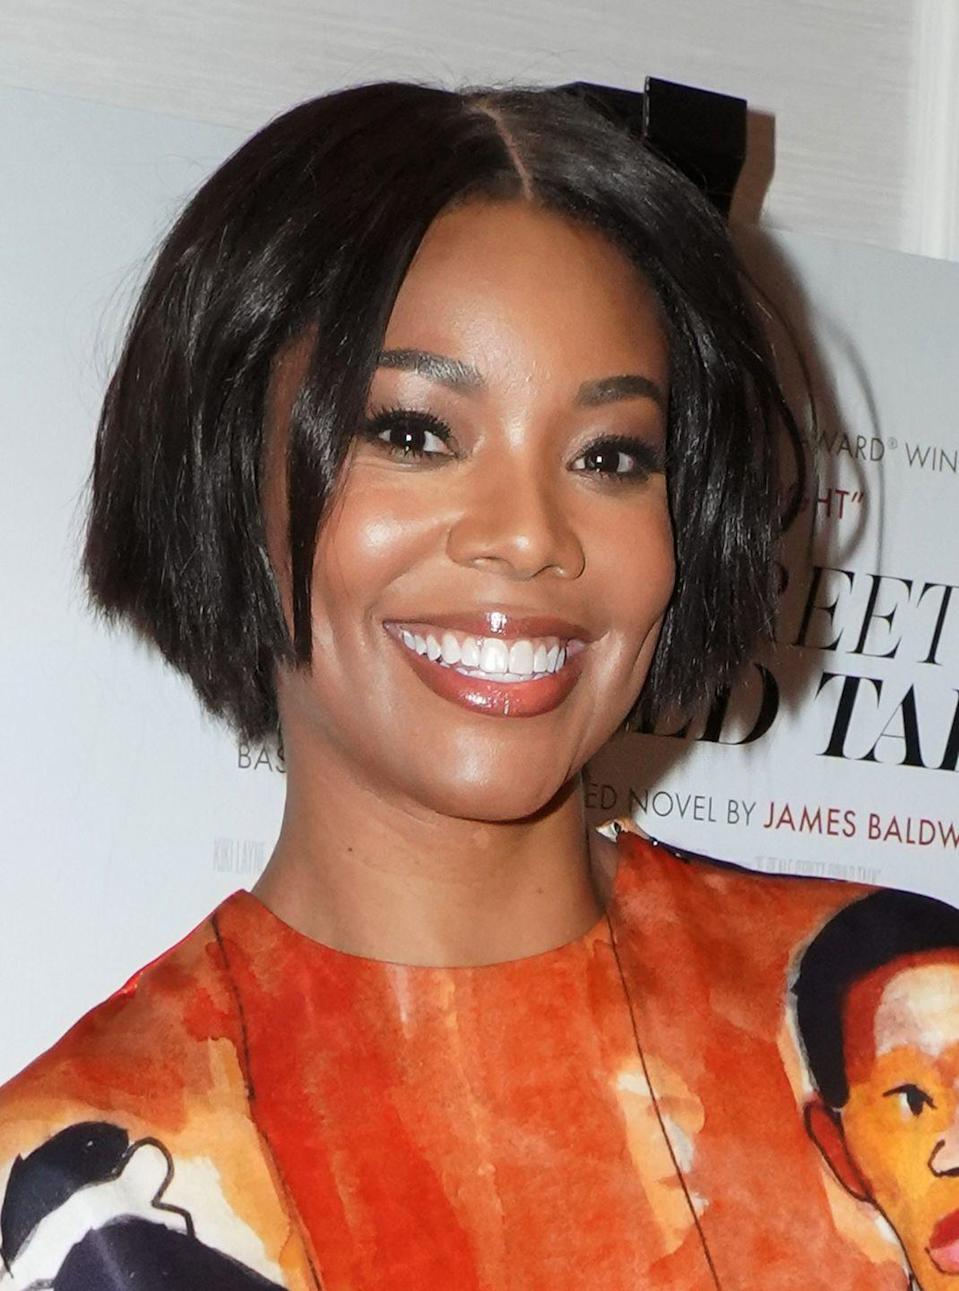 """<p>Actress <strong>Gabrielle Union</strong> shows off her short shaggy bob. The tapered back helps shape the face and makes this <a href=""""https://www.goodhousekeeping.com/beauty/hair/g2774/how-to-style-short-hair/"""" rel=""""nofollow noopener"""" target=""""_blank"""" data-ylk=""""slk:short hairstyle"""" class=""""link rapid-noclick-resp"""">short hairstyle </a>great for women with oval and heart-shaped faces. </p>"""